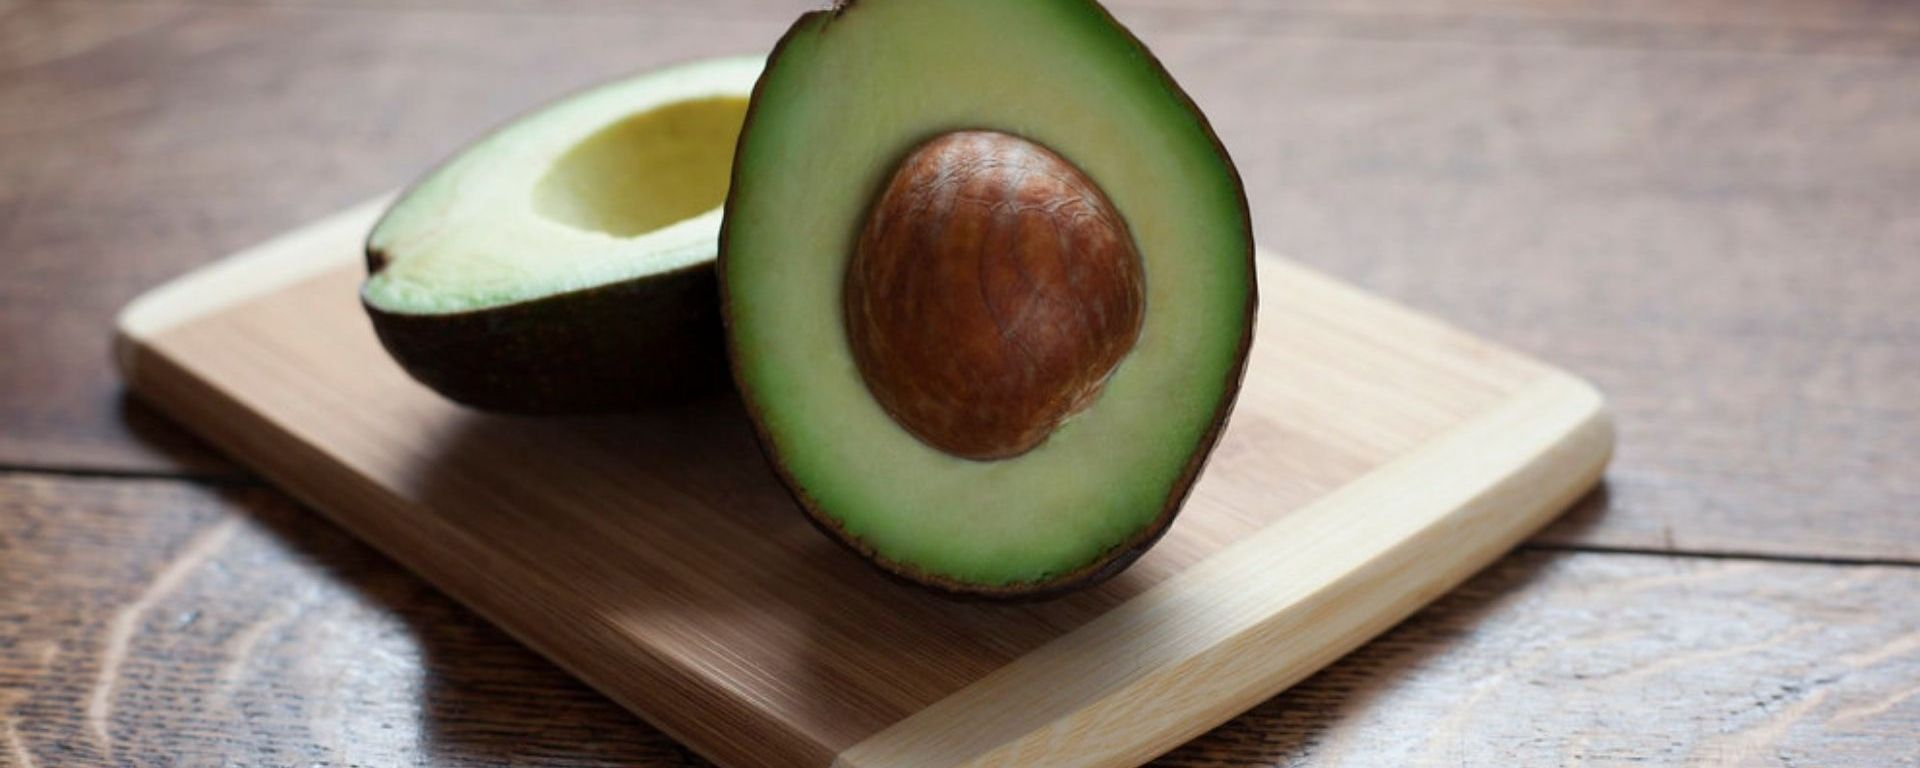 A photo of an avocado sliced in half sitting on a cutting board on top of a wood table.